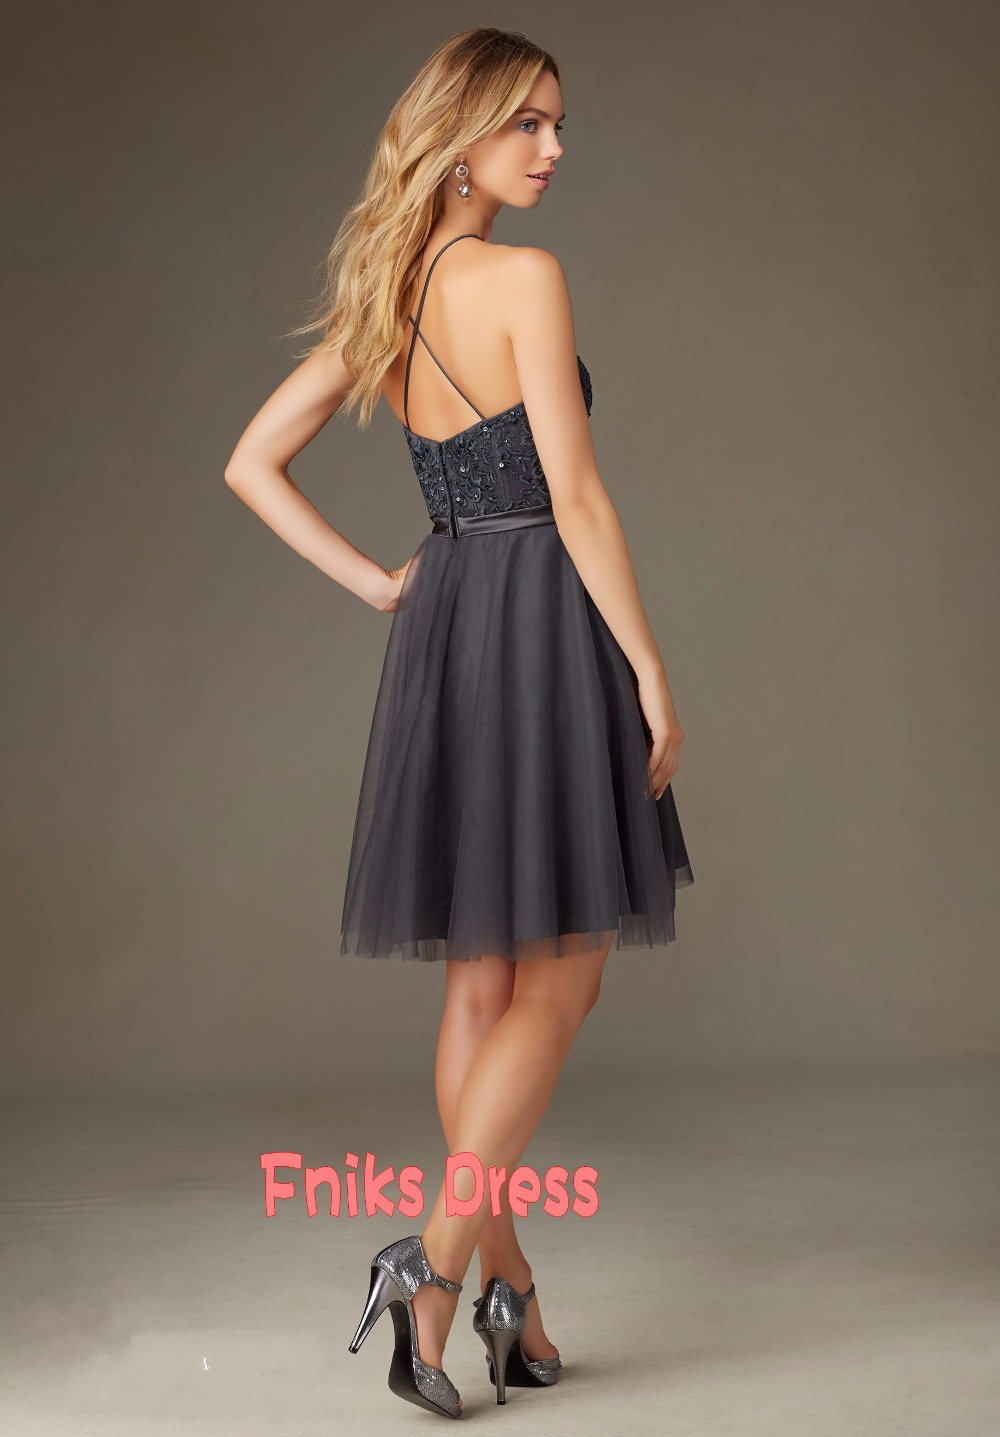 2016 cheap short bridesmaid dresses under 100 sexy halter 2016 cheap short bridesmaid dresses under 100 sexy halter cirsscorss back elegant dark grey color tulle beach vestido madrinha in bridesmaid dresses from ombrellifo Choice Image